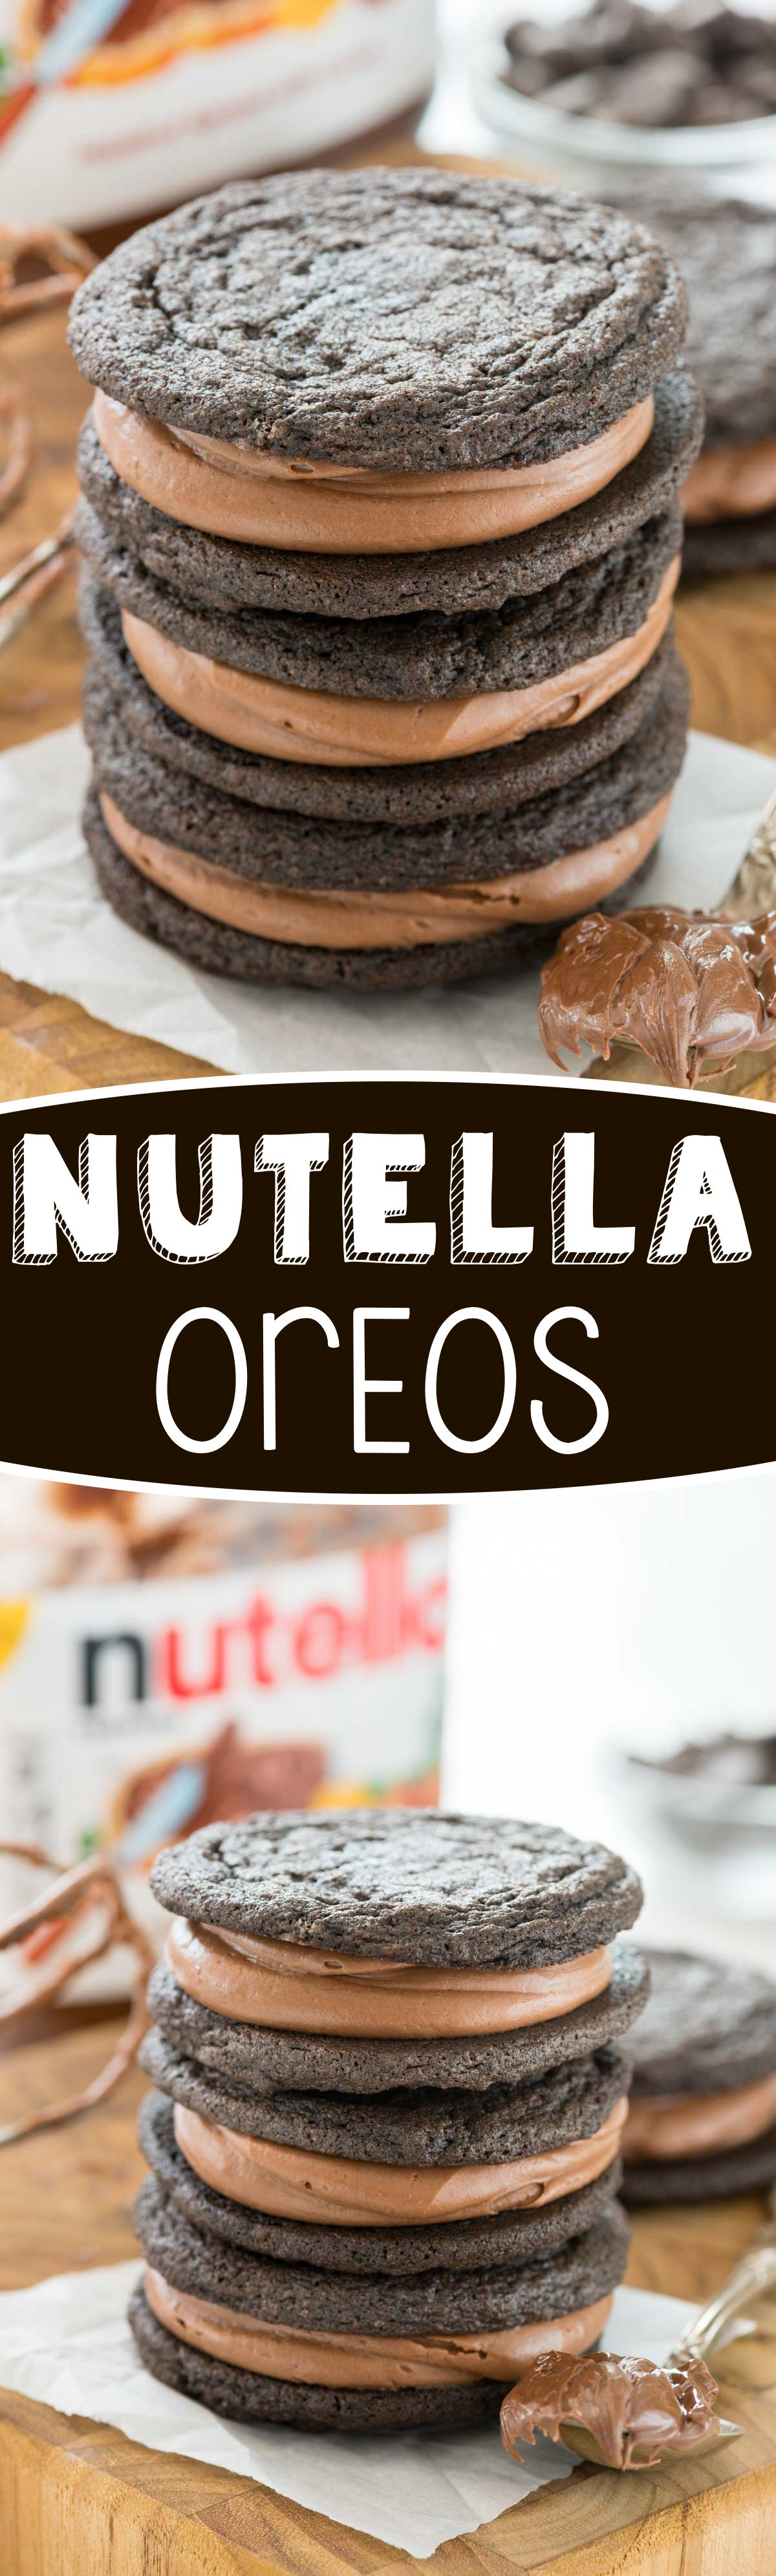 Quick Nutella Icing Recipe Homemade Nutella Oreos Recipe Nutella Frosting Easy Cookie